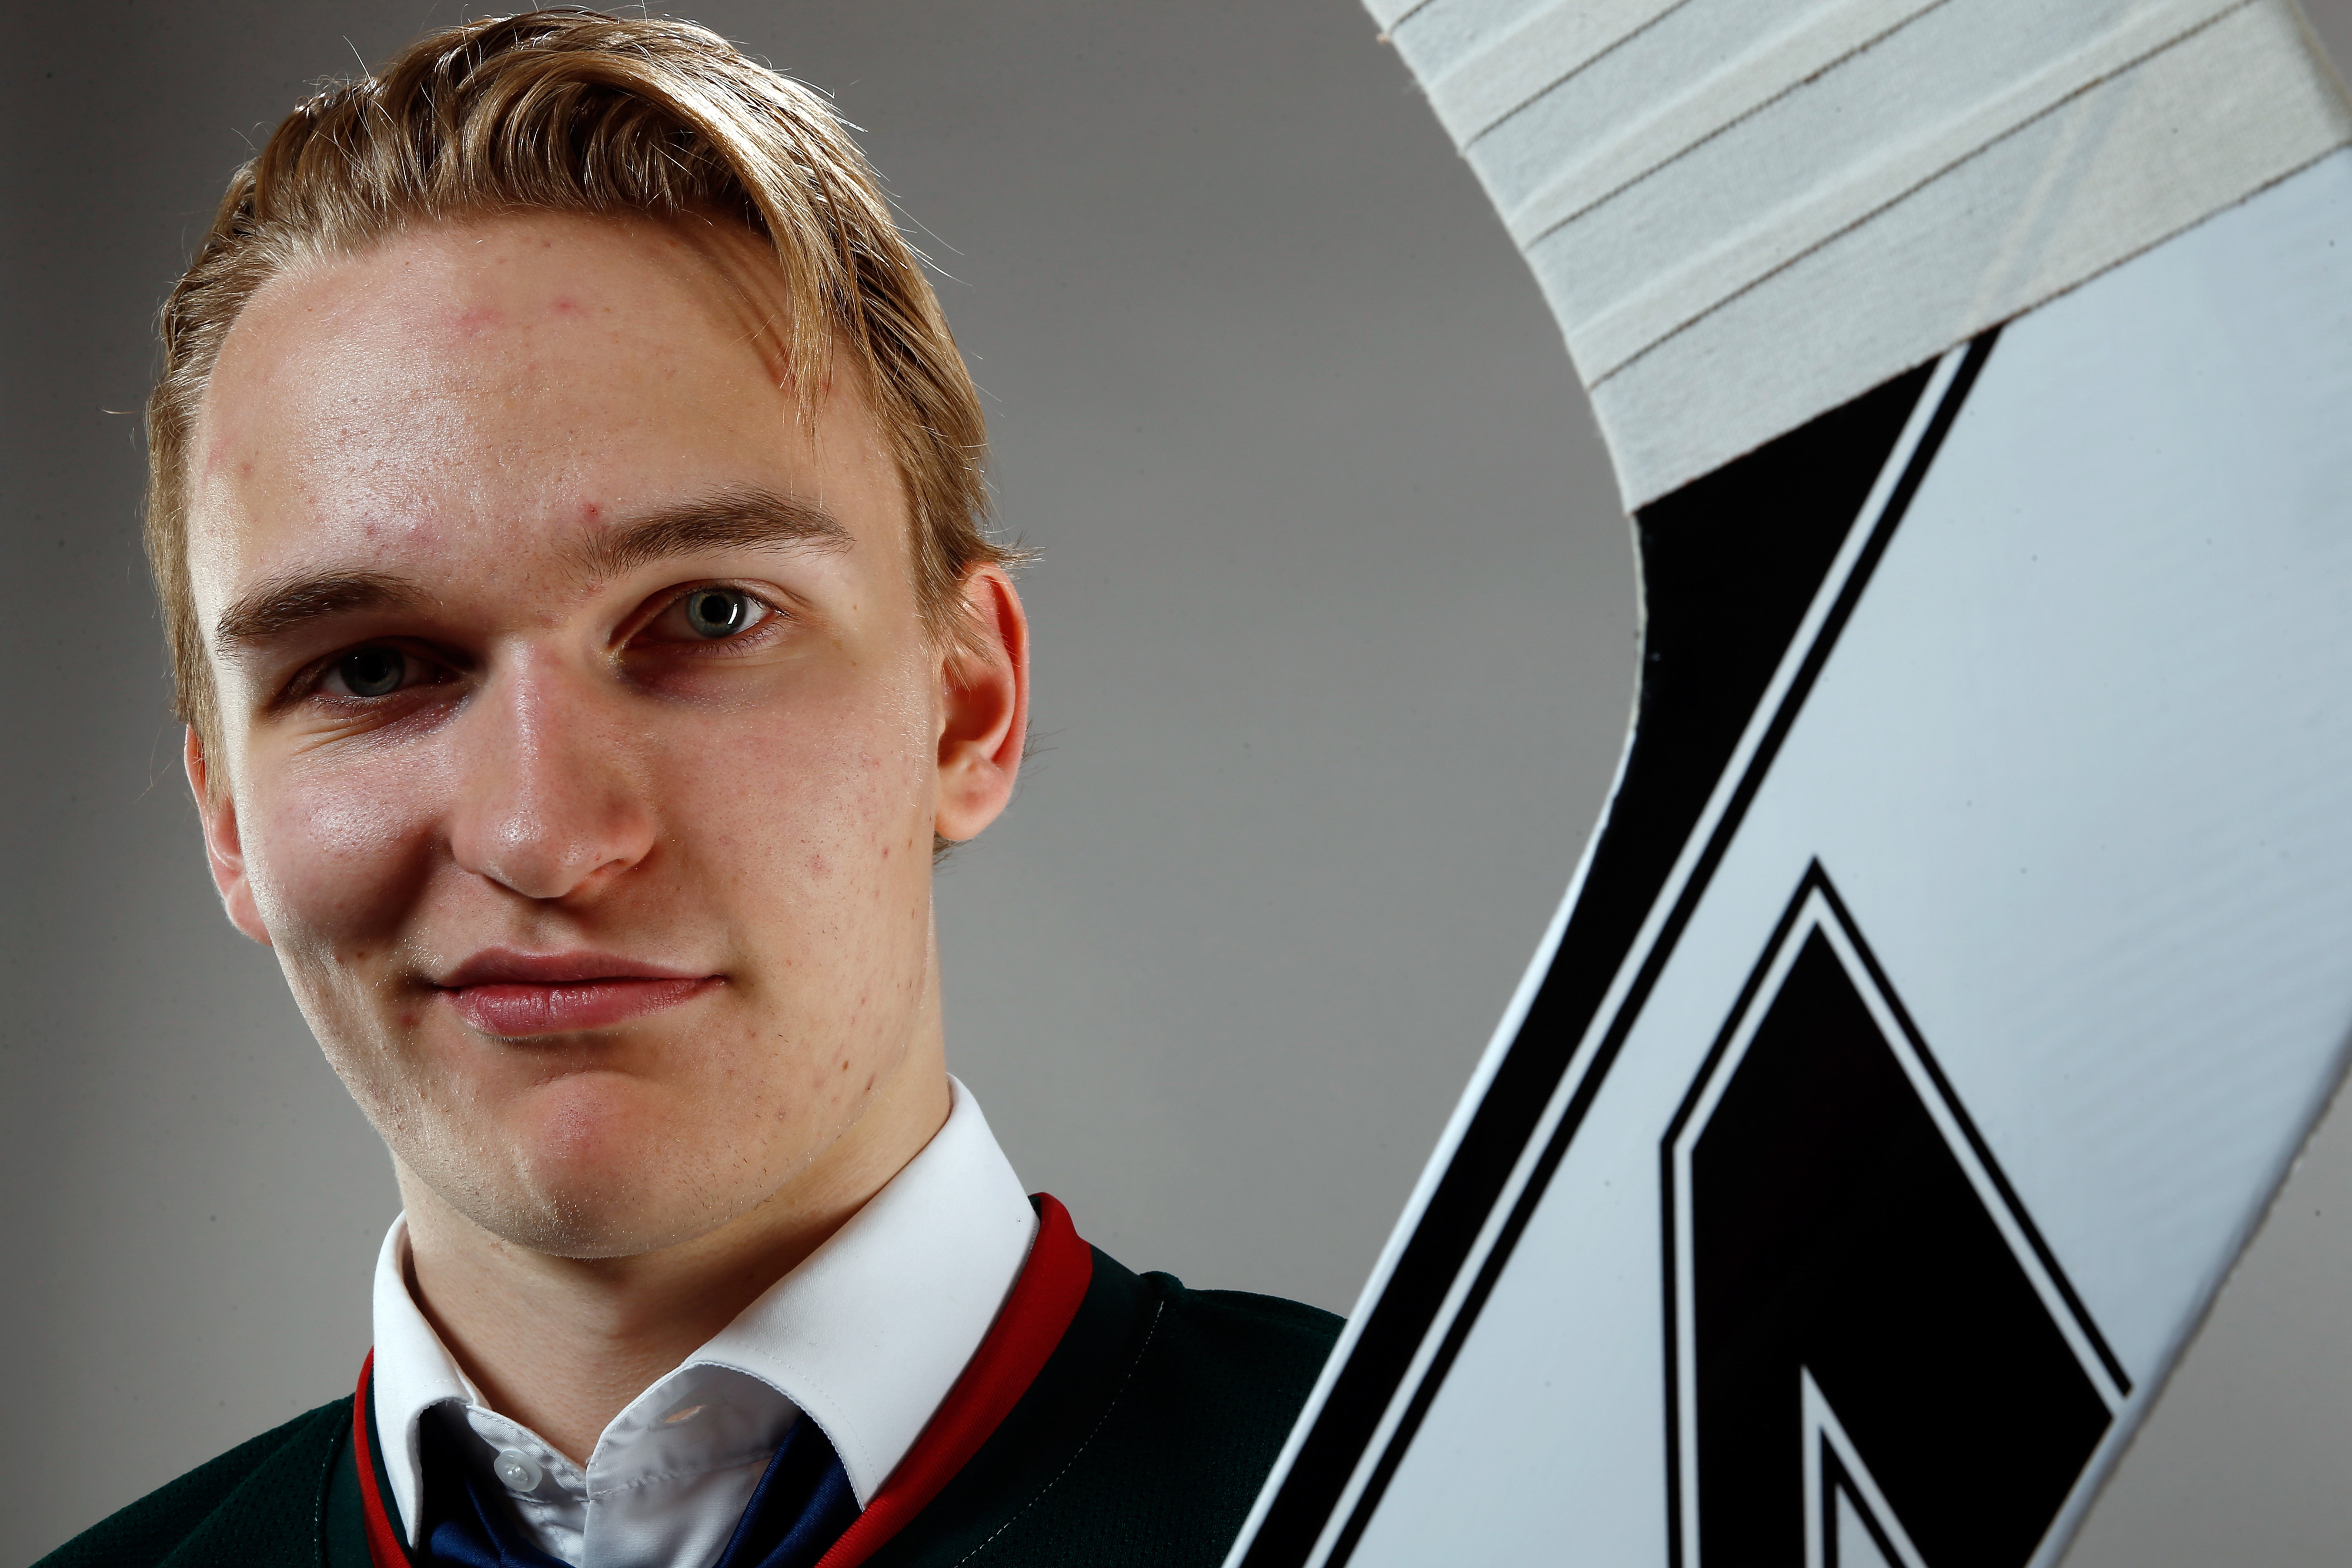 Kaapo Kahkonen has sweet hair, and an even sweeter name, but can he crack Minnesota's Top 25 Under 25?